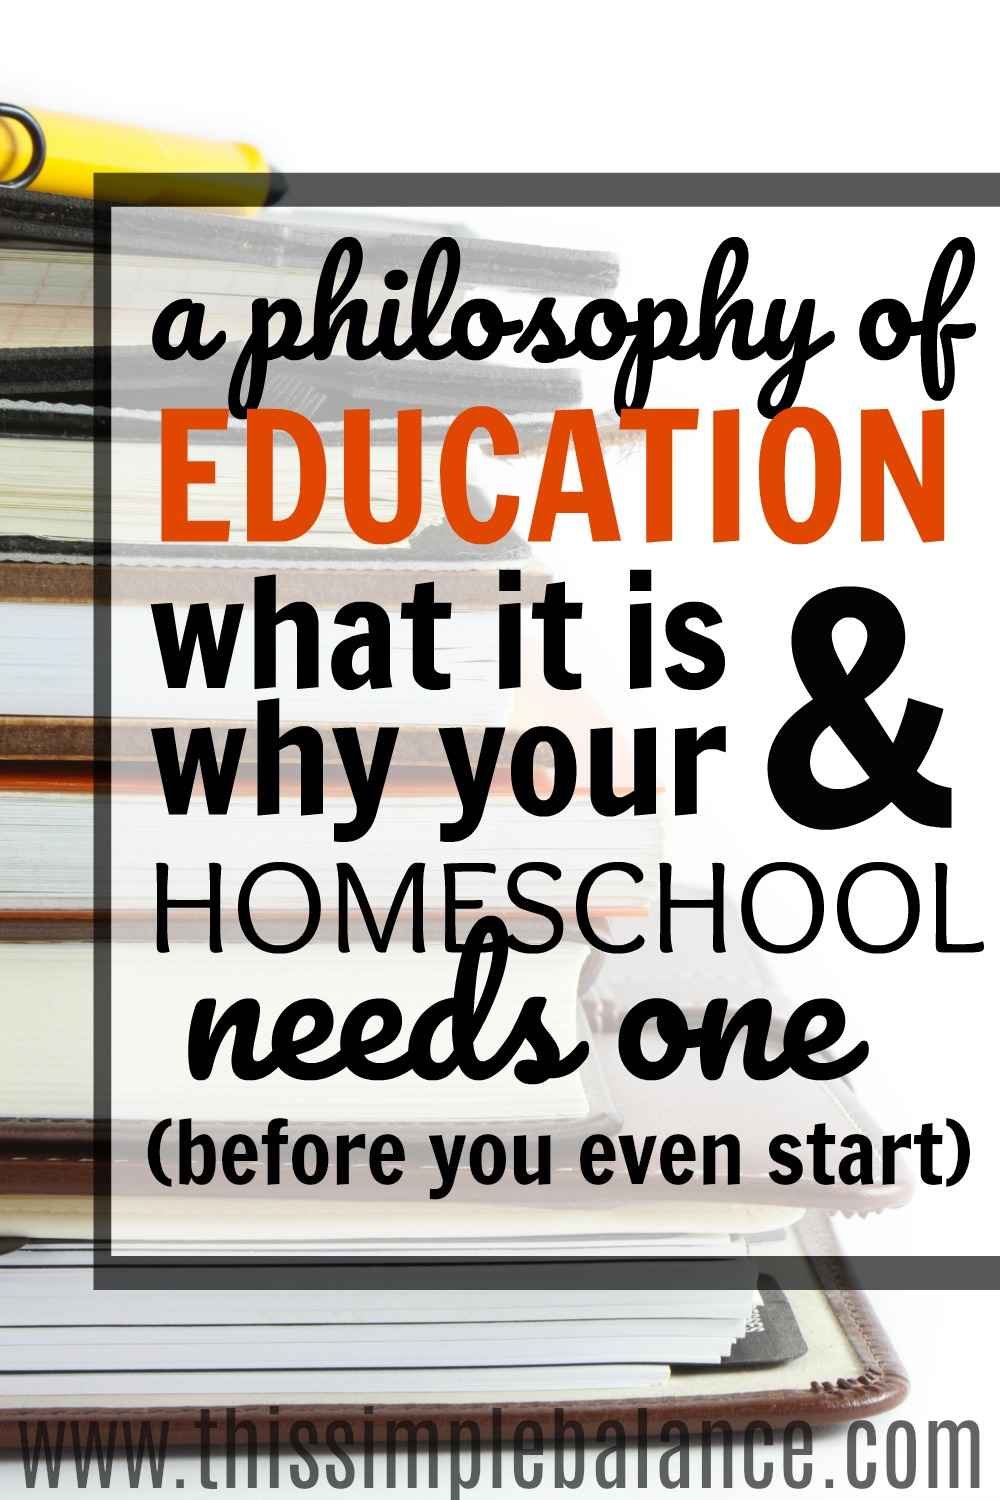 Find out what a philosophy of education is, and why it is SO important that you figure out what yours is before you even start homeschooling.